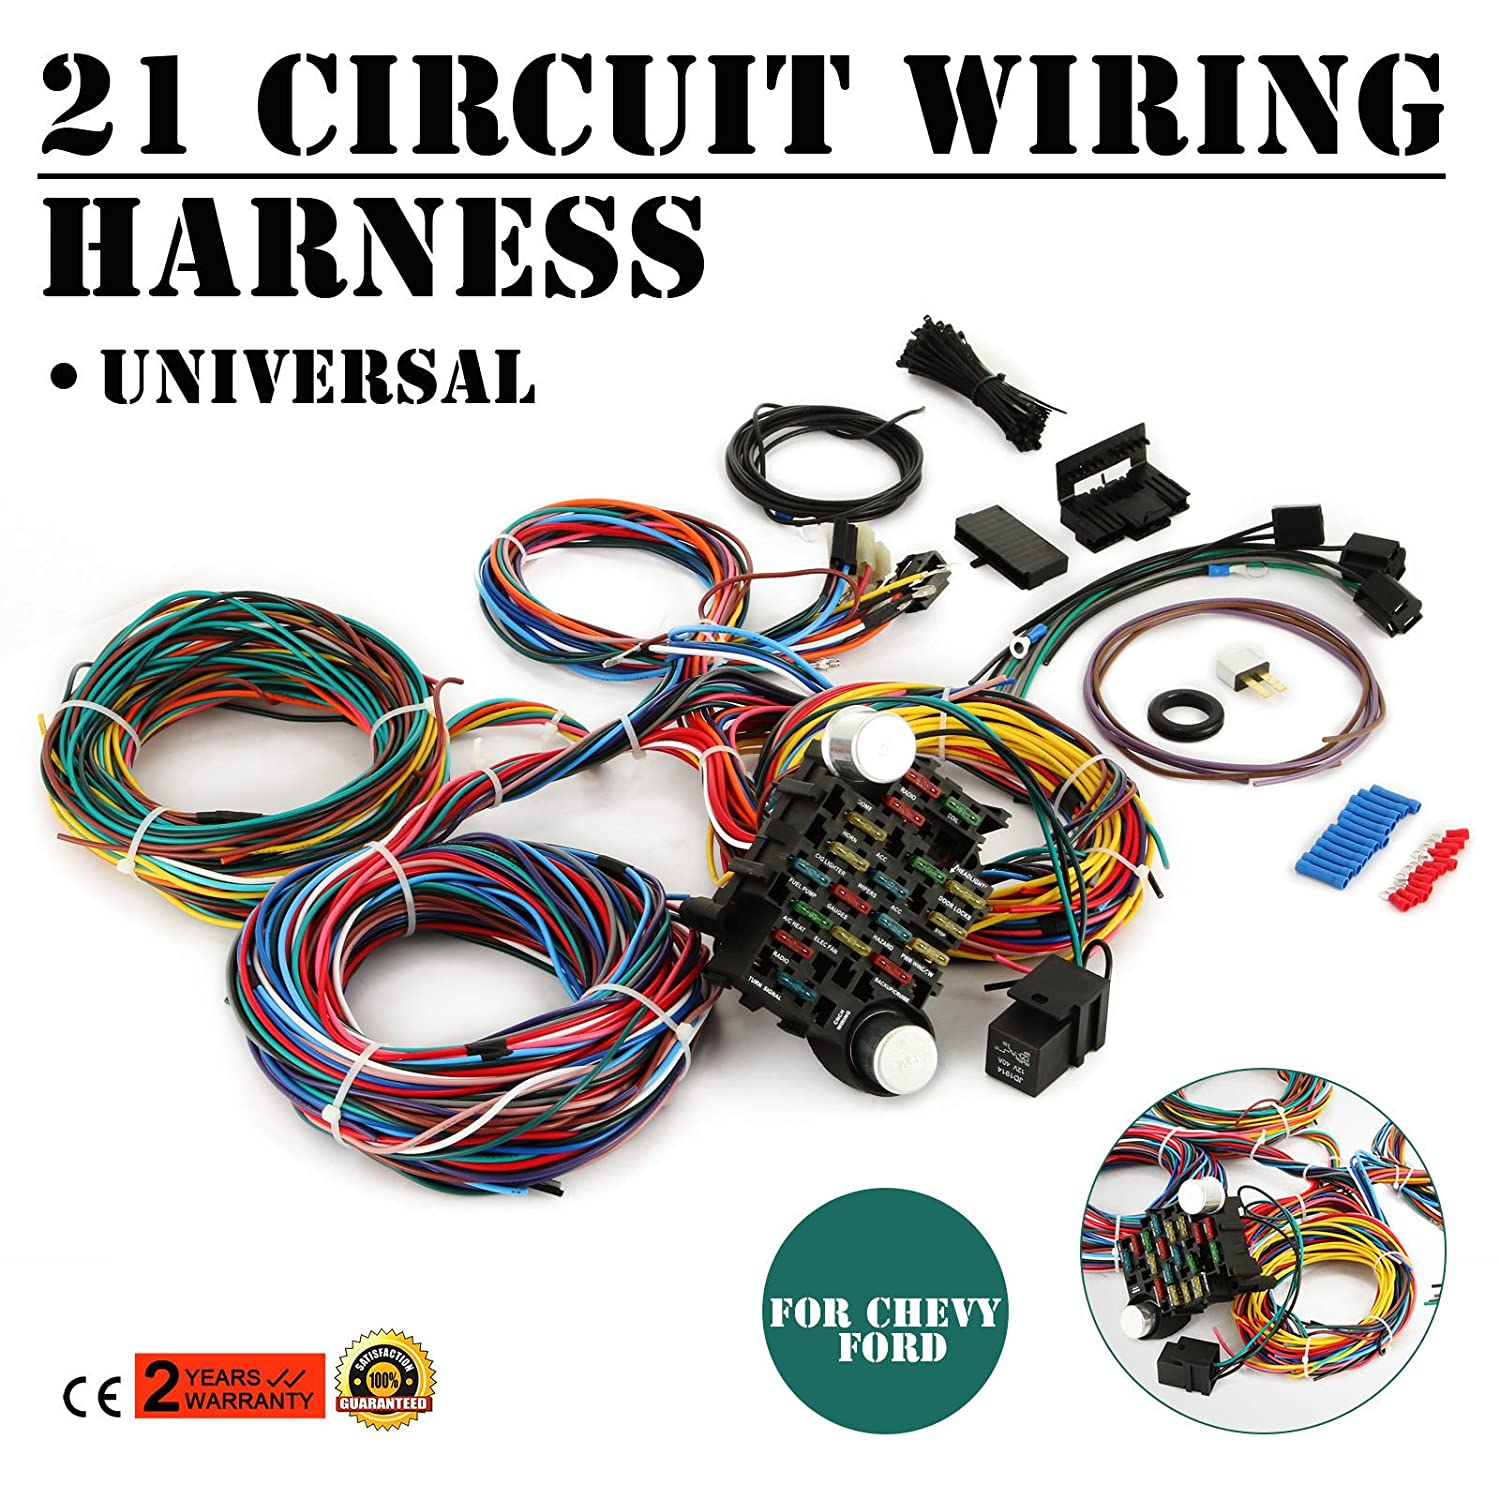 Stereo Wiring Harness Chevy Ebay Car Radio Stereo Wire Wiring Harness